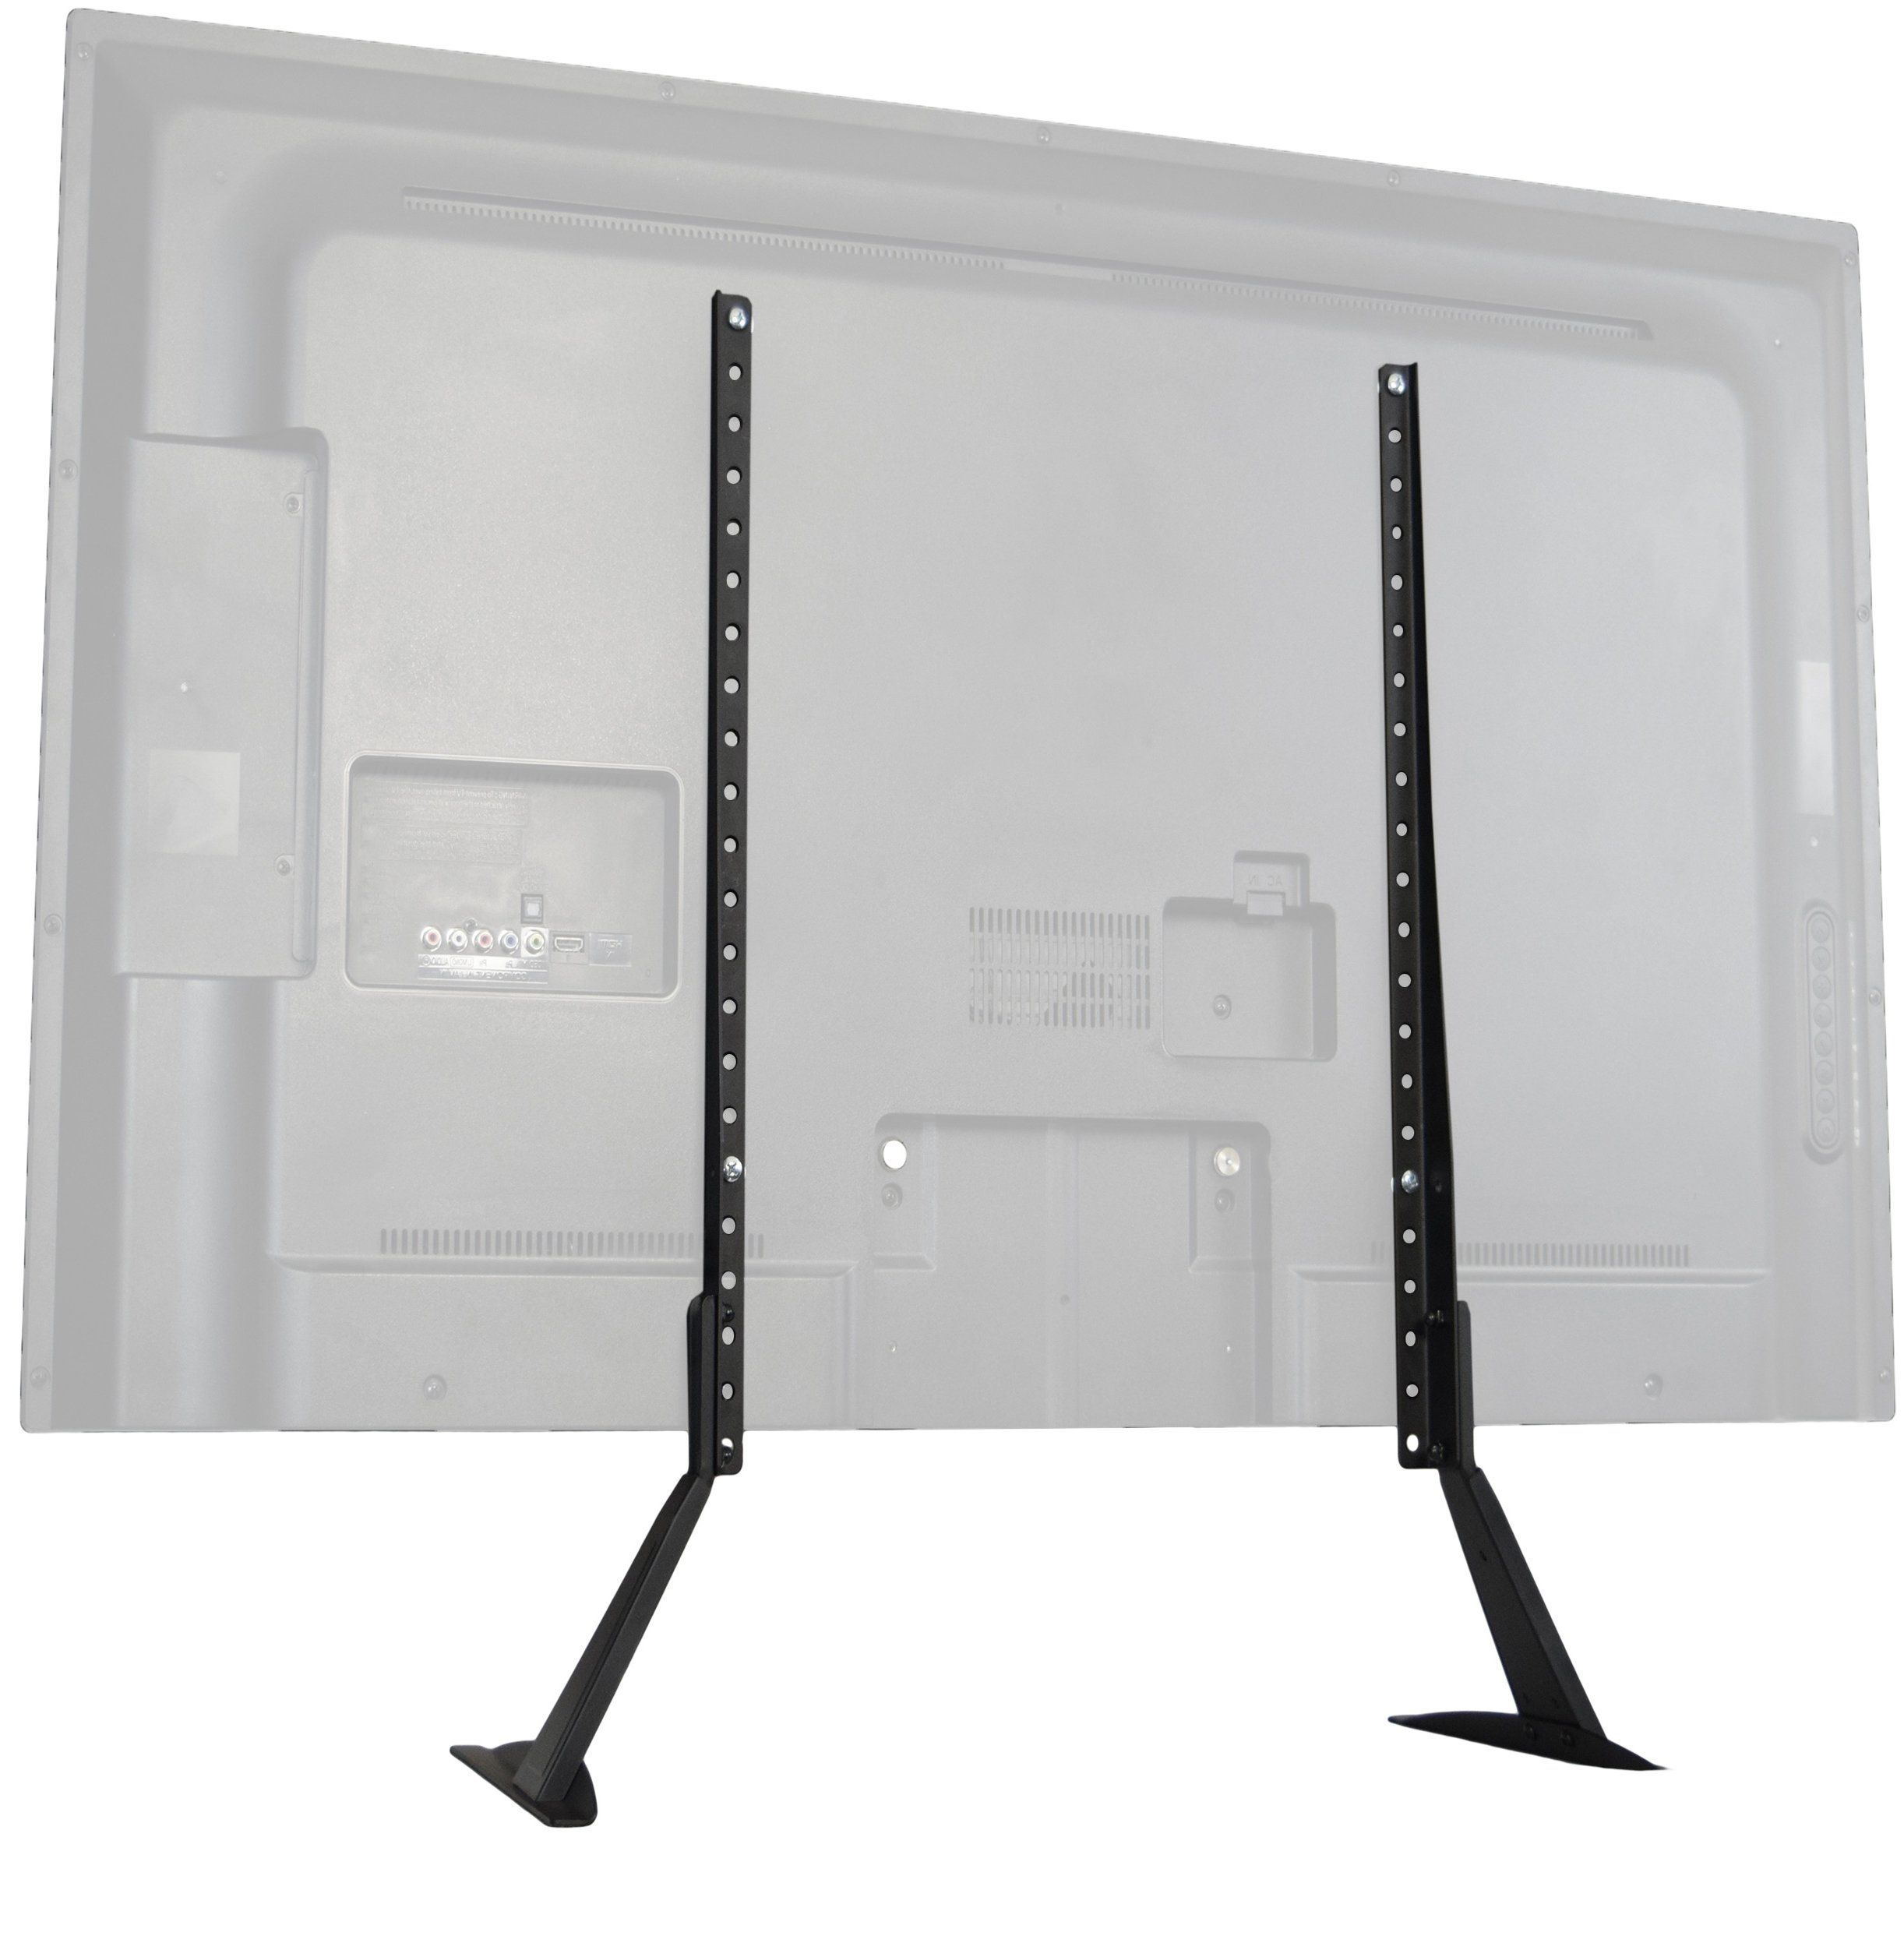 Vivo Universal Lcd Flat Screen Tv Table Top Stand Base Mount Fits 27 To 55 T V Tv00t